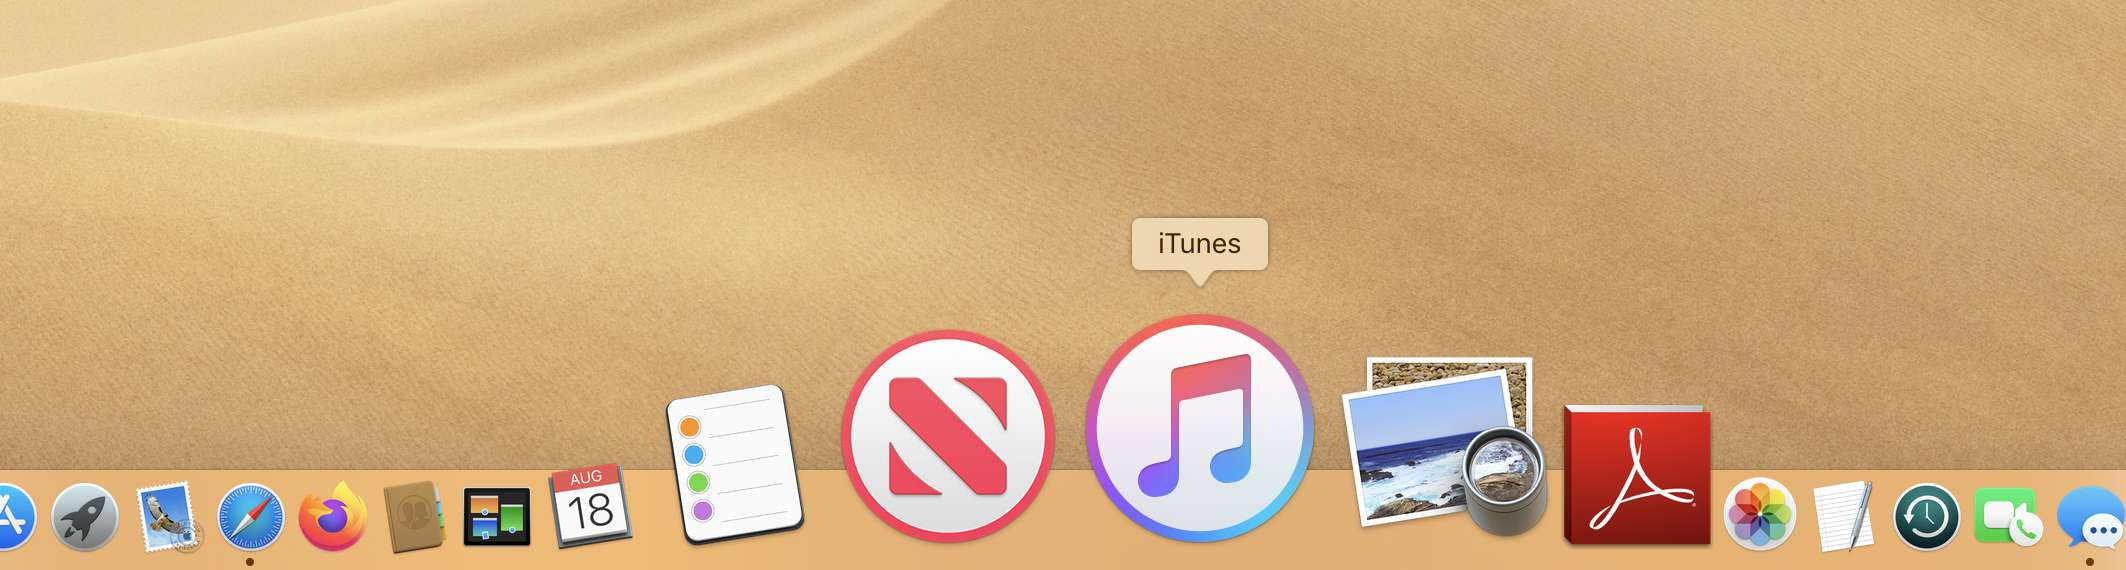 The Mac Dock with iTunes selected